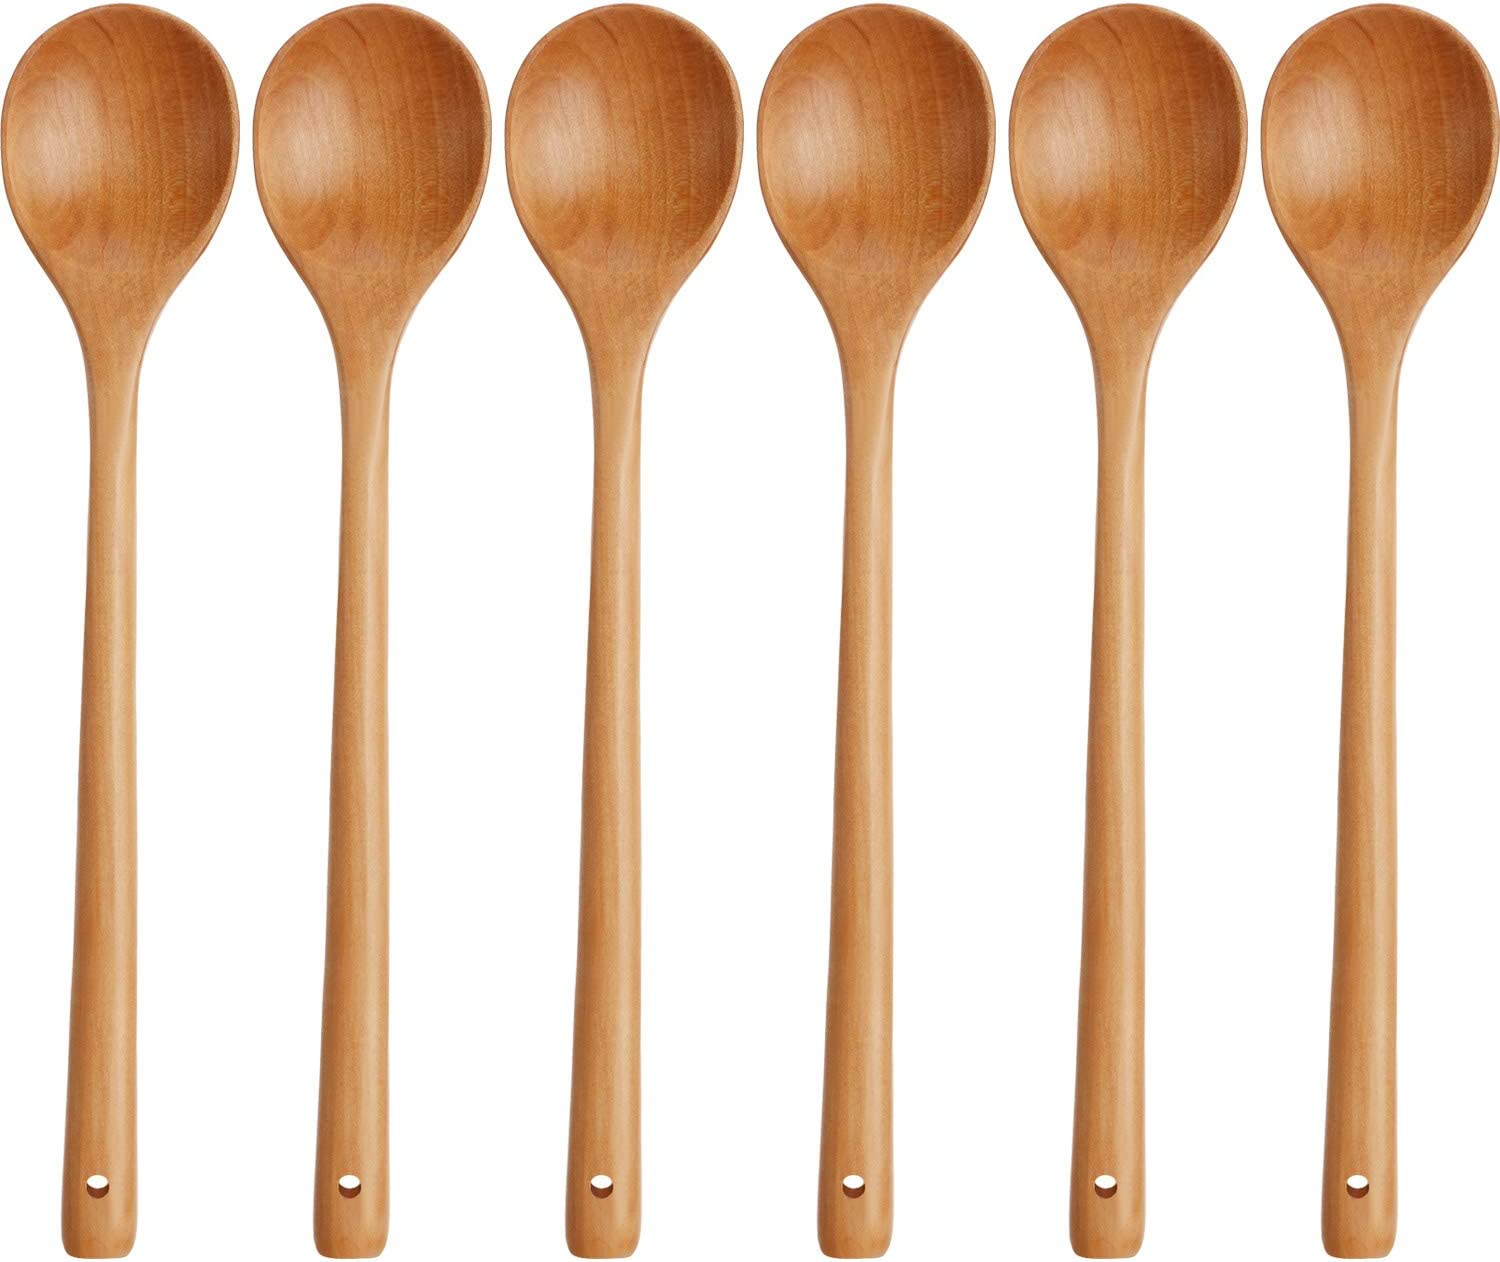 Wood Mixing Spoon Long Handle Wooden Spoons Wood Soup Spoons for Kitchen Stirring and Cooking, 13 Inches Long (6)